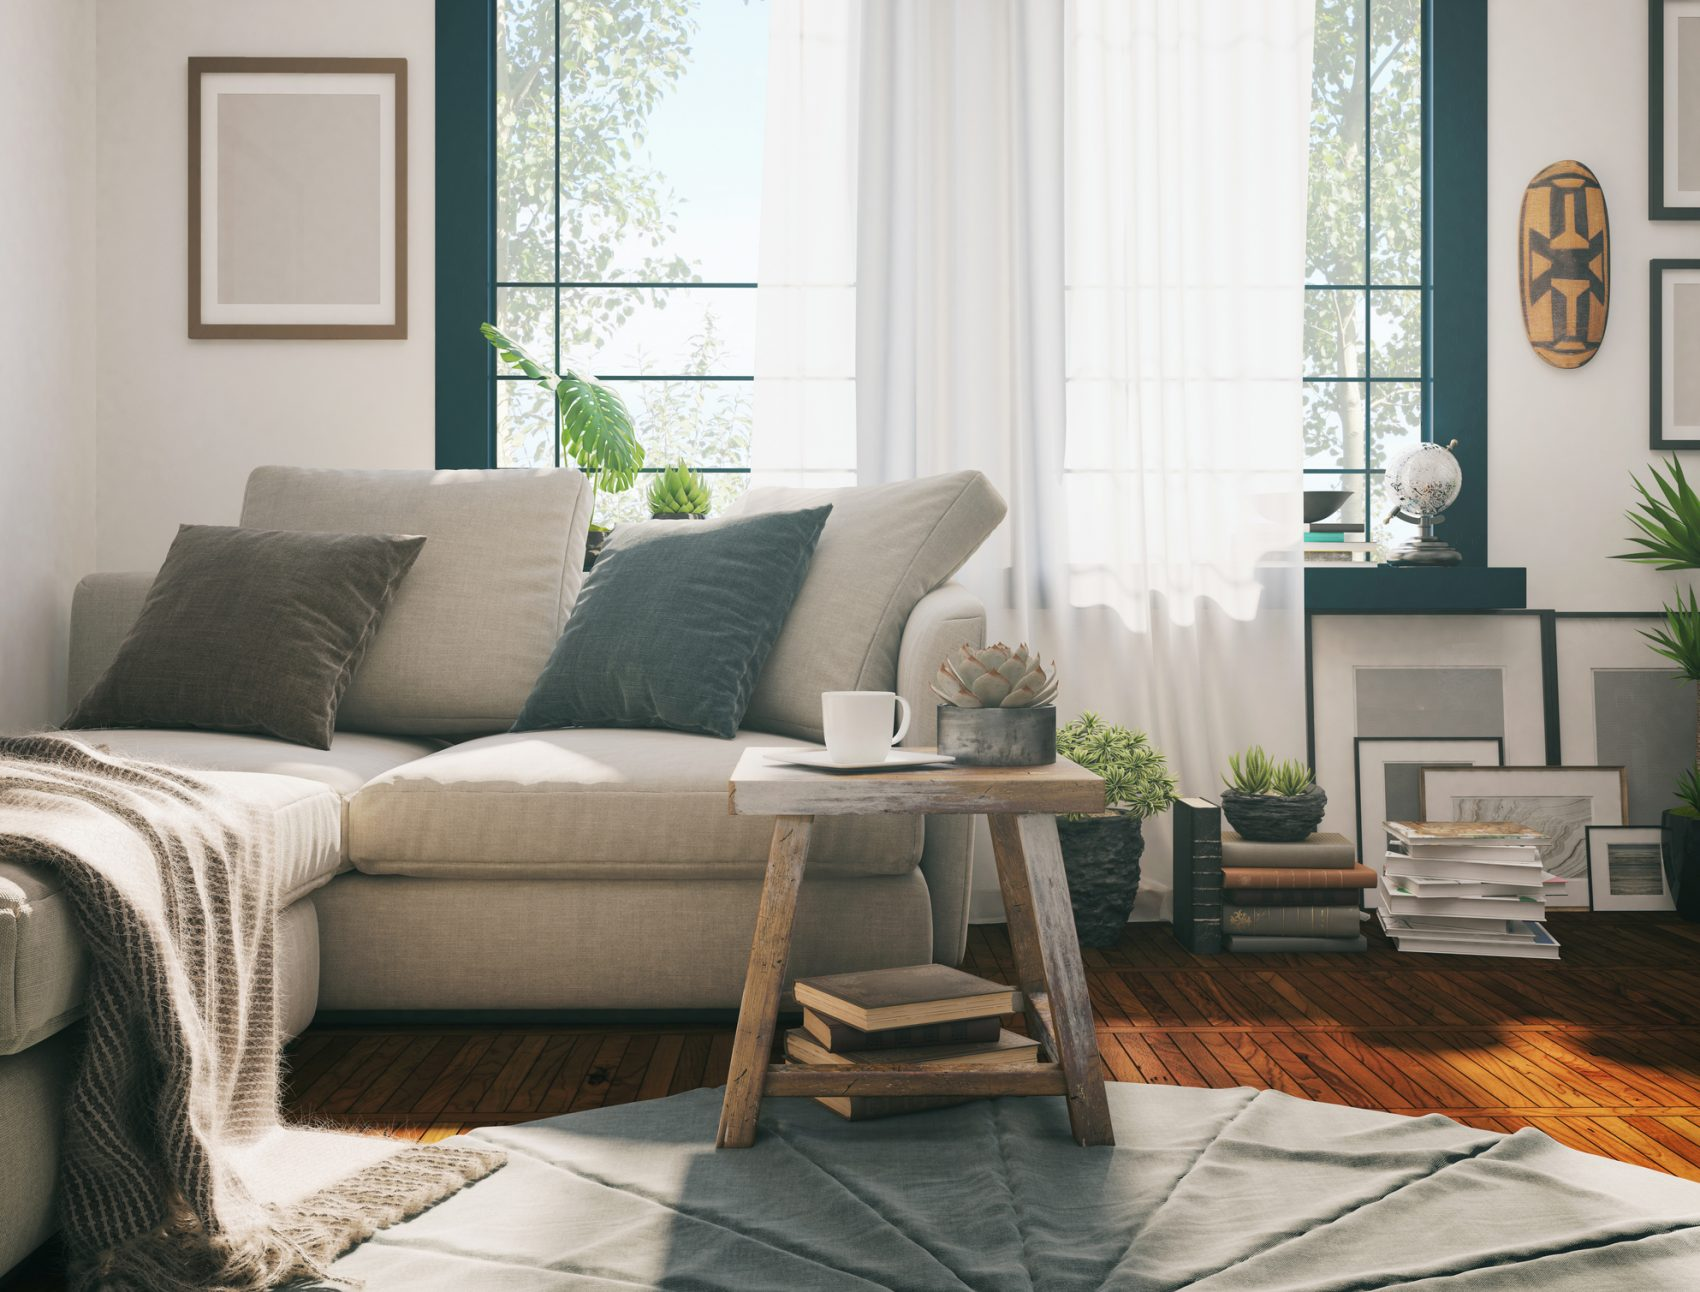 S fold Curtains Living room